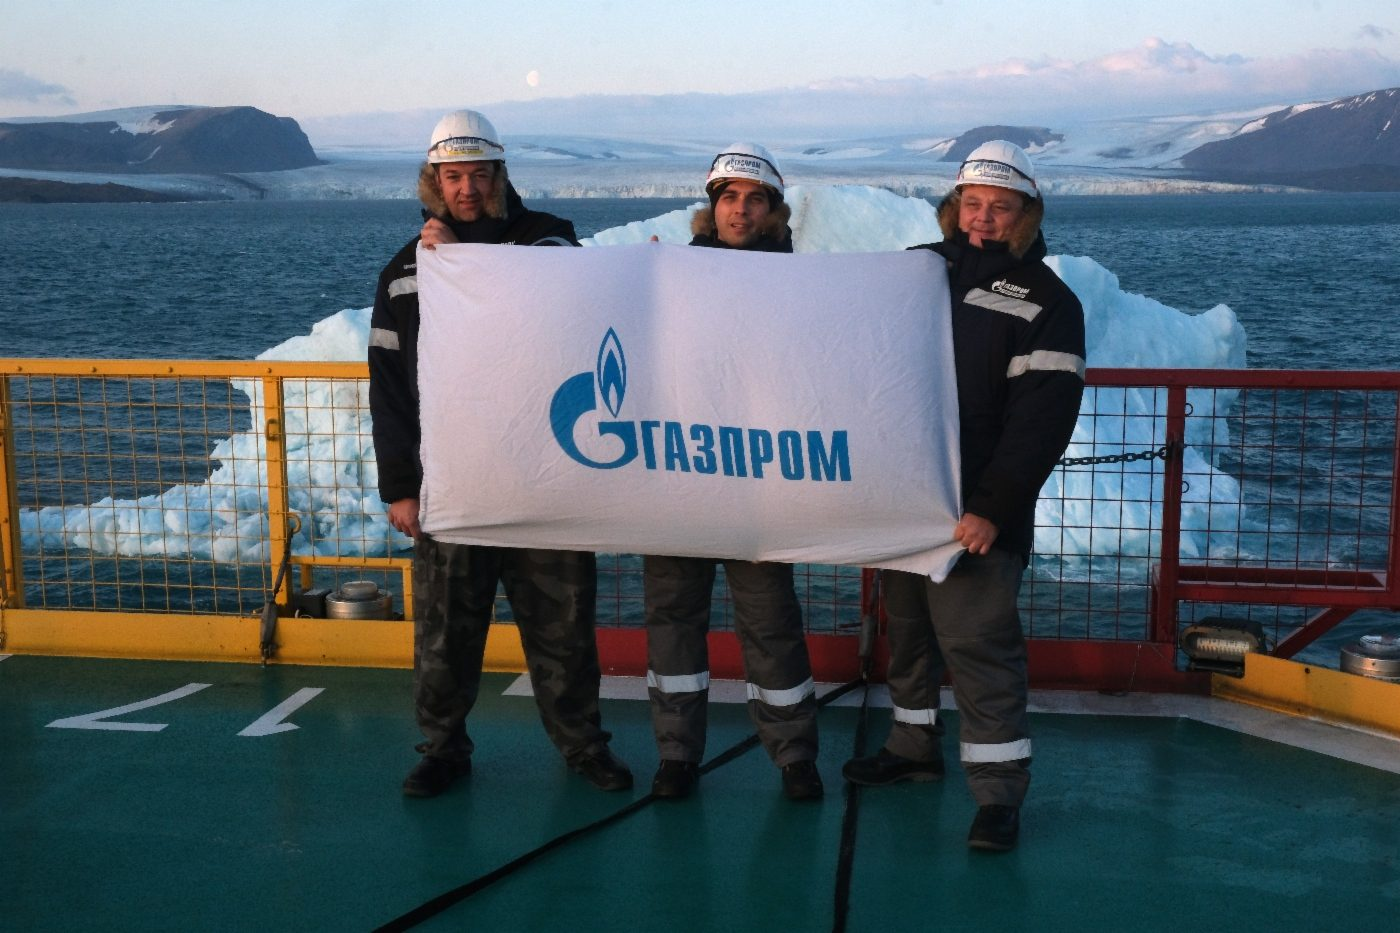 Gazprom starts building ice-resistant platform for extreme conditions of Arctic field - Offshore Energy